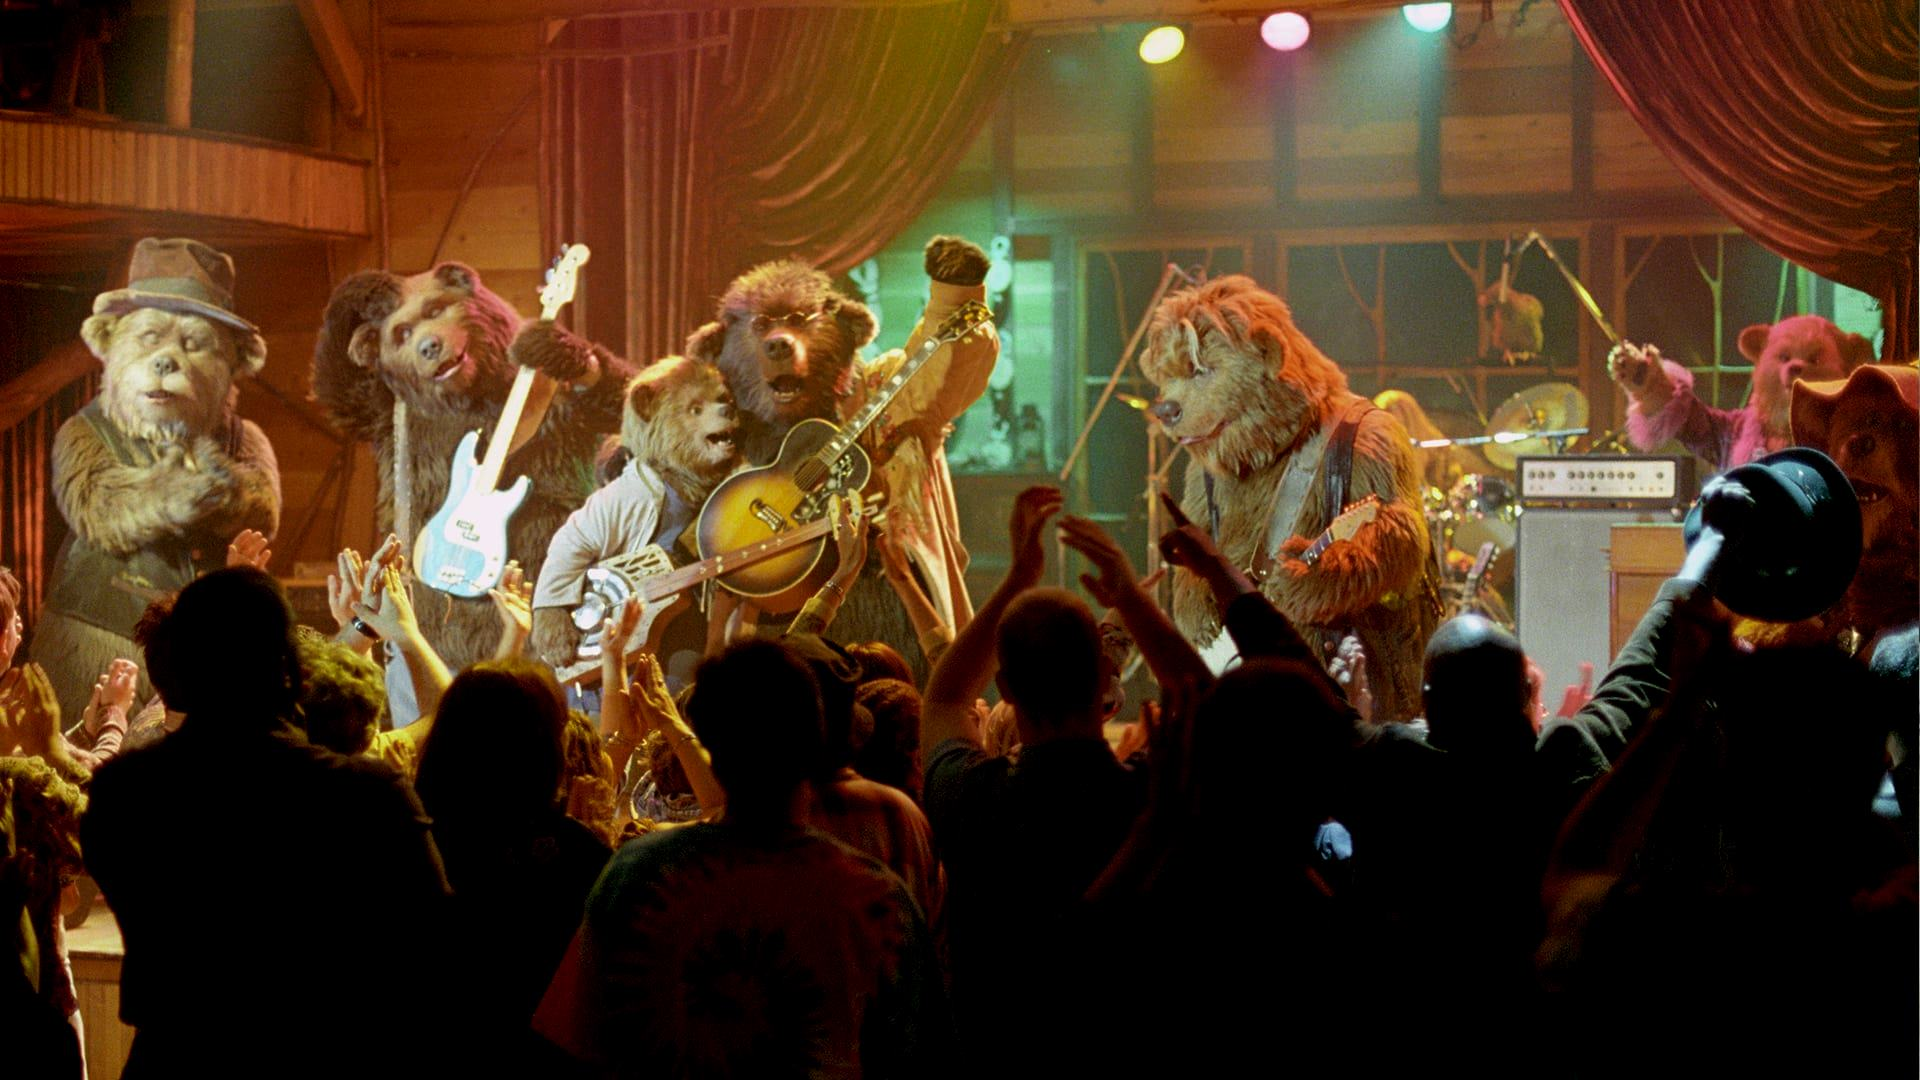 The band reunited on stage in The Country Bears (2002)